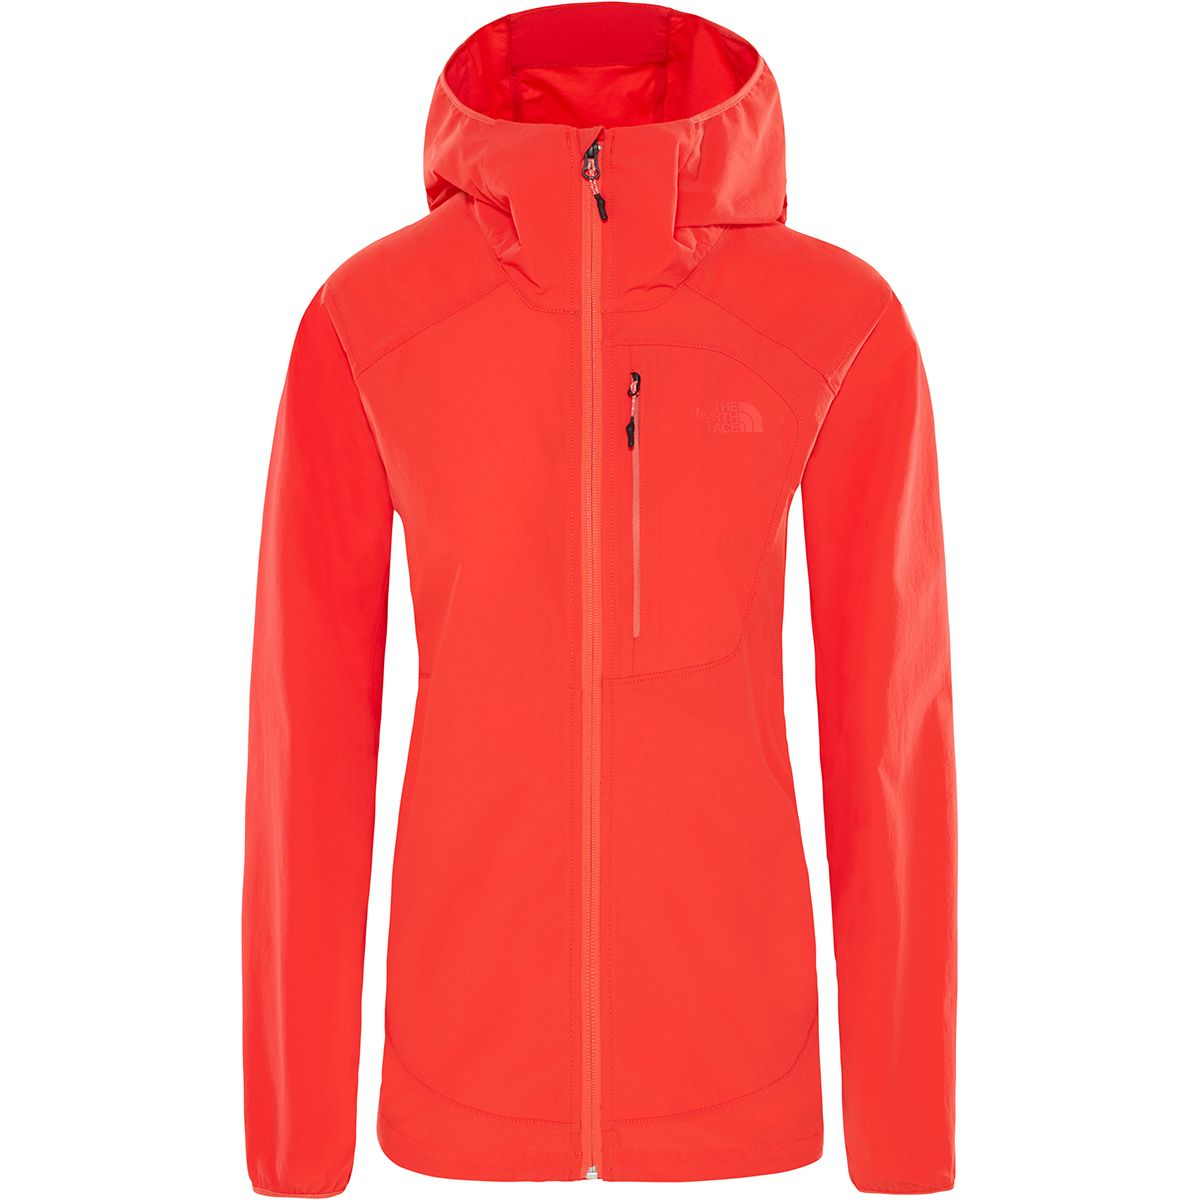 The North Face Damen Northdome Wind Jacke (Größe XS, Rot) | Windbreaker > Damen